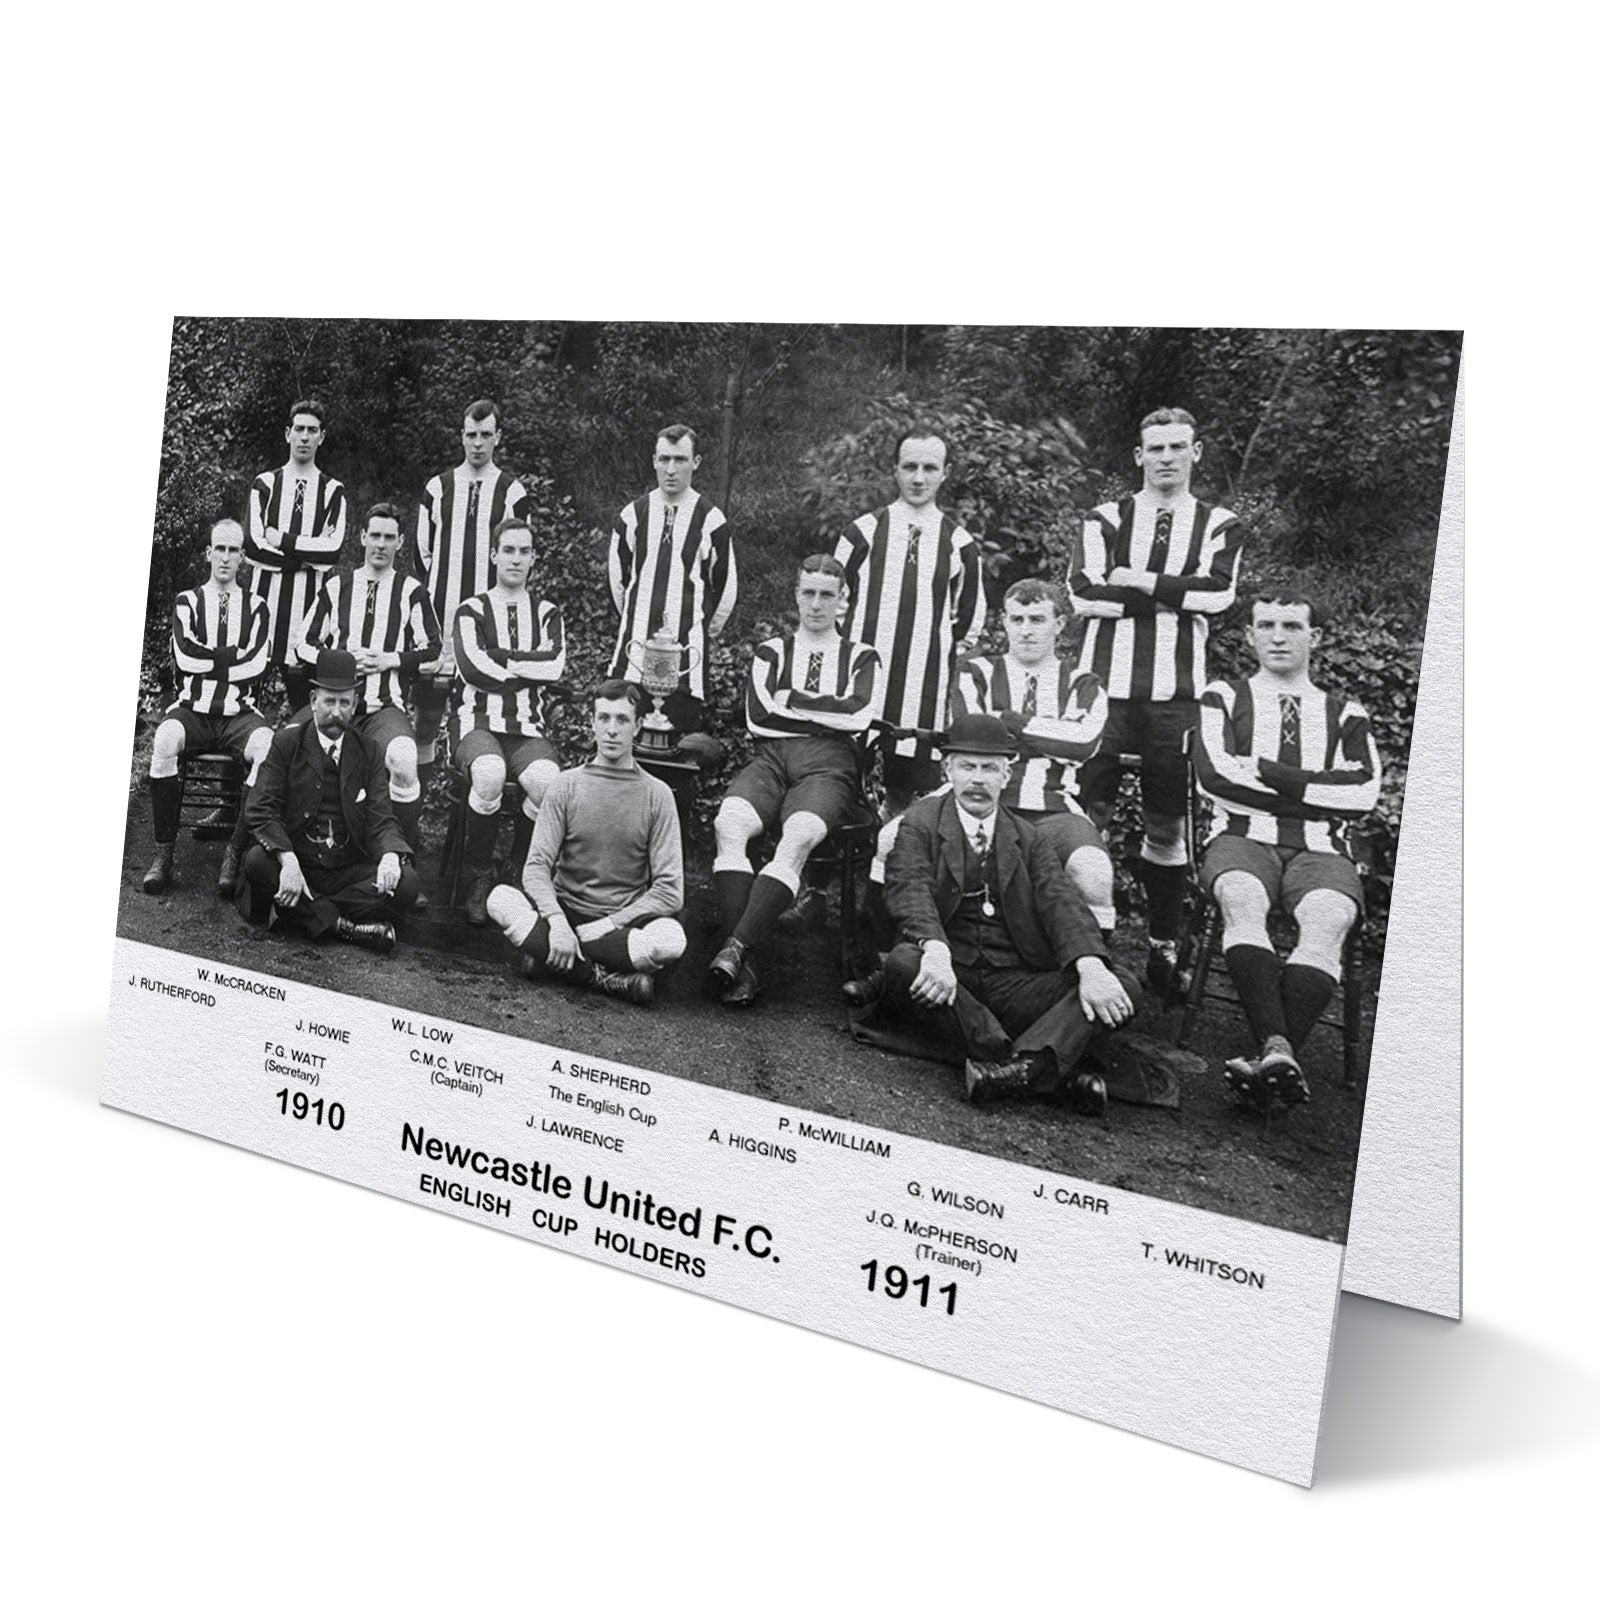 Newcastle United English Cup Holders Team 1910-11 - Greeting Card